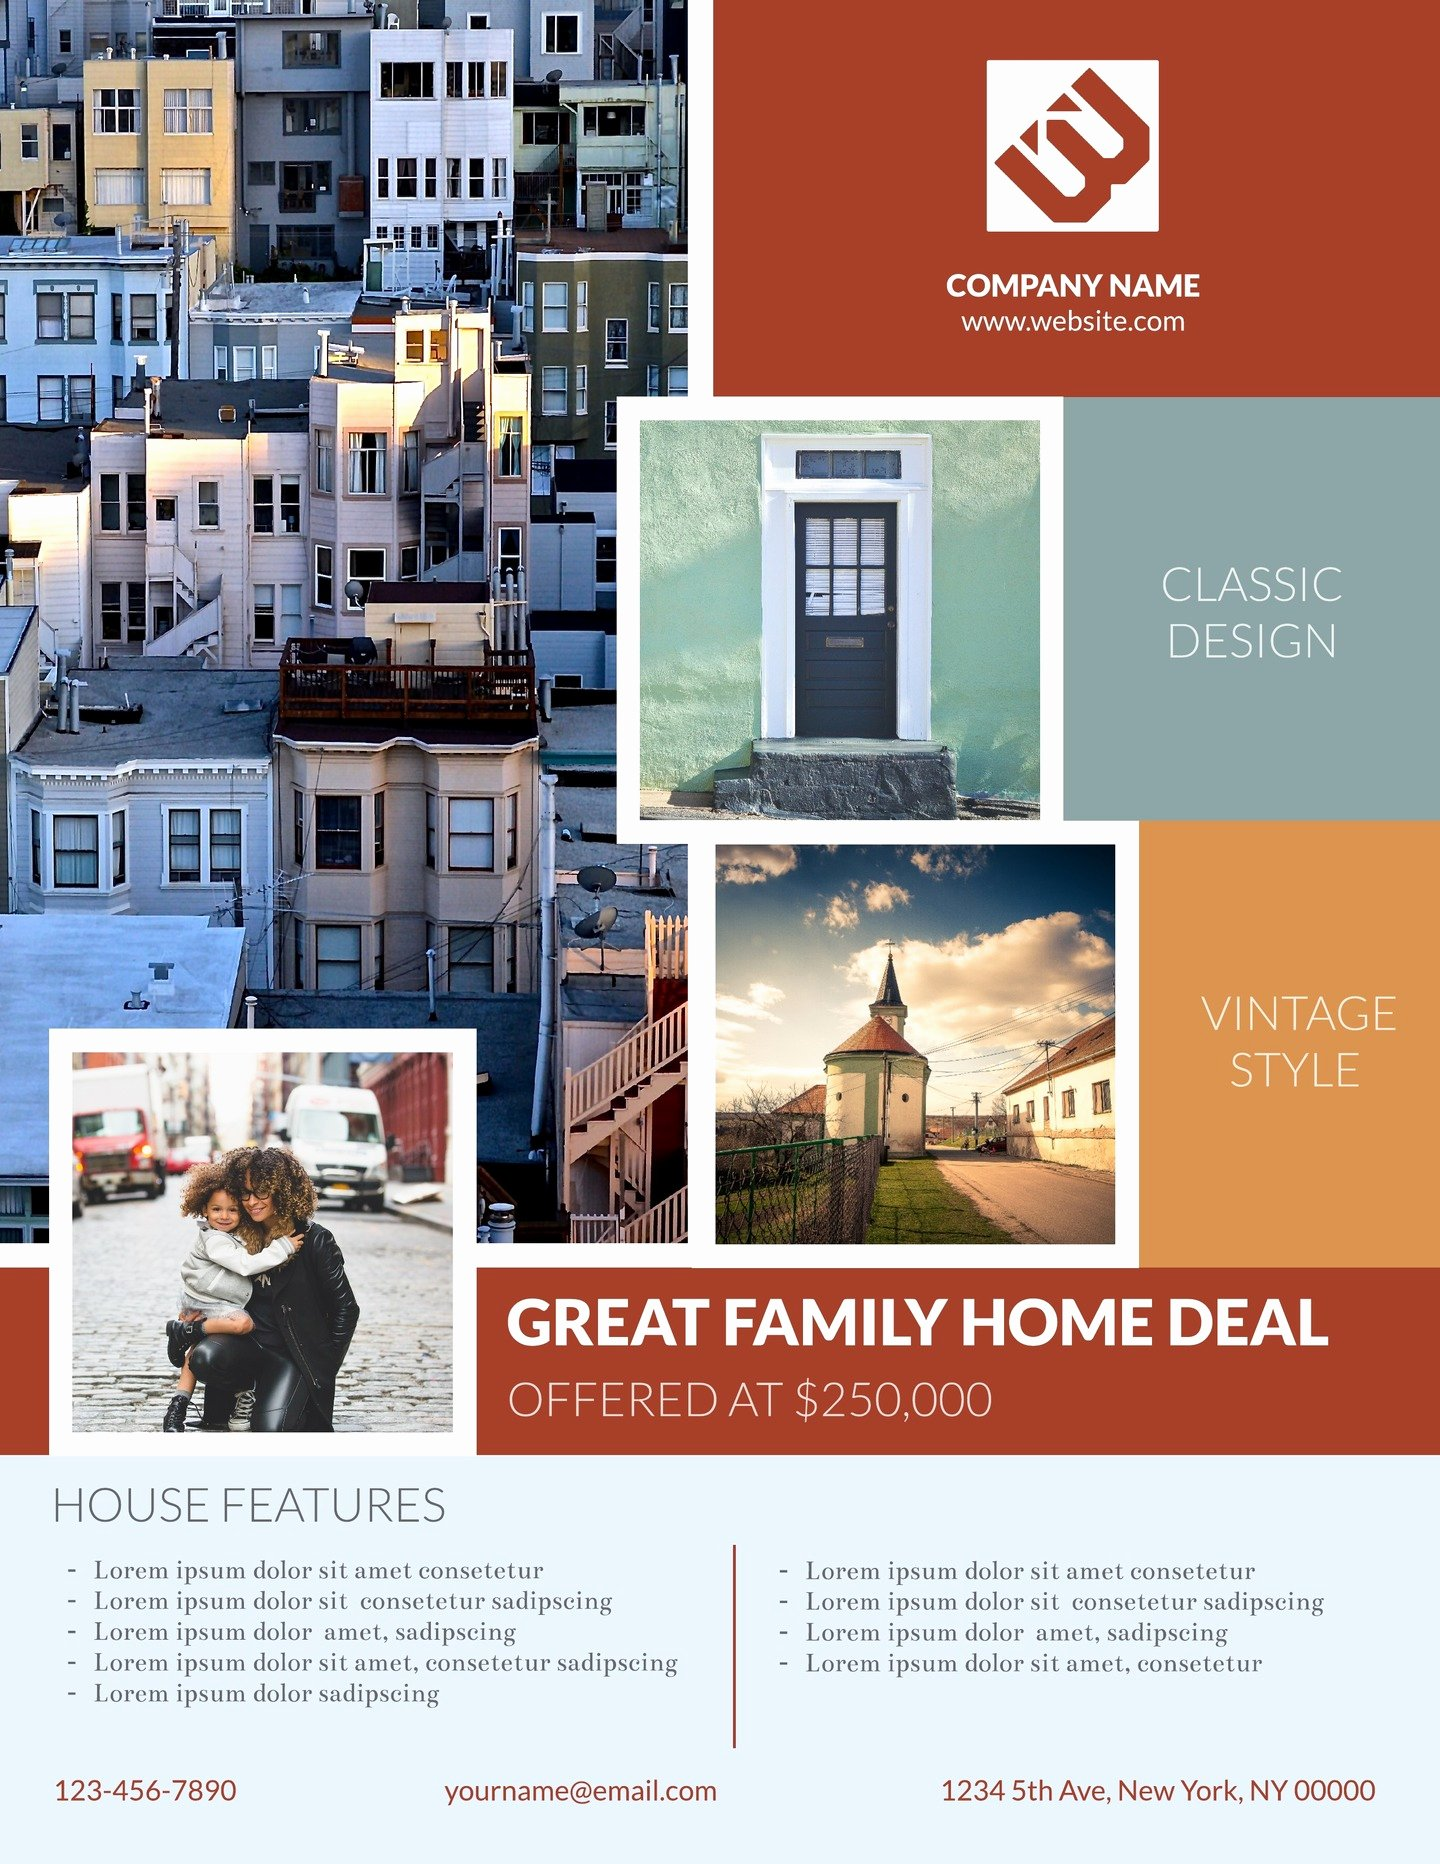 Real Estate Advertisement Template Inspirational 4 Free Real Estate Flyer Templates & Examples Lucidpress